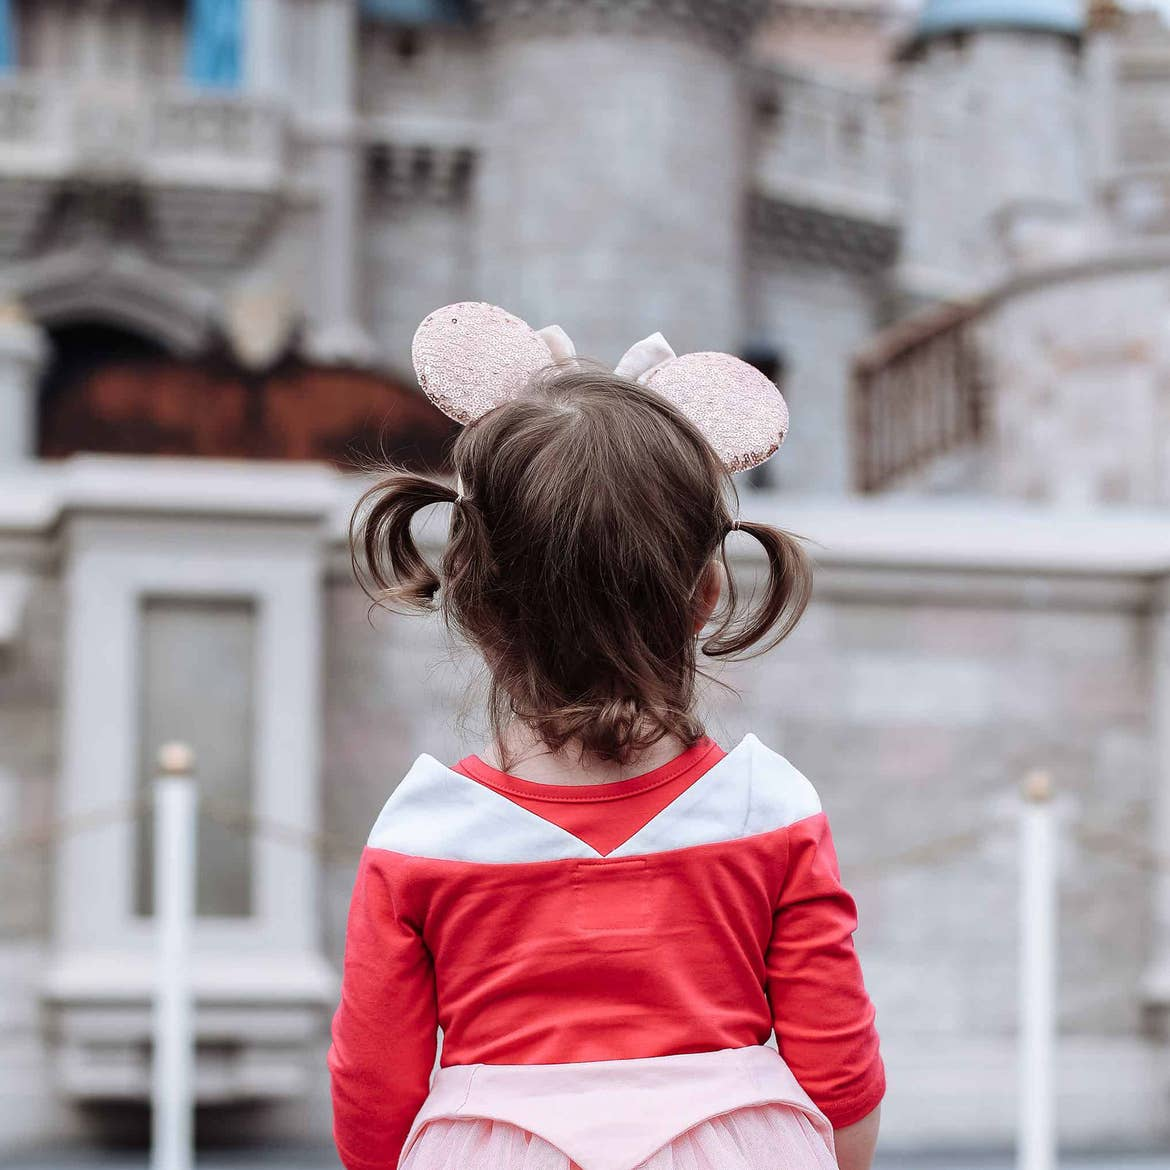 Poppy Bleu stands in front of Cinderella's Castle at Magic Kingdom Park at Walt Disney World® Resort wearing a pink Aurora dress and sparkly Minnie ears.